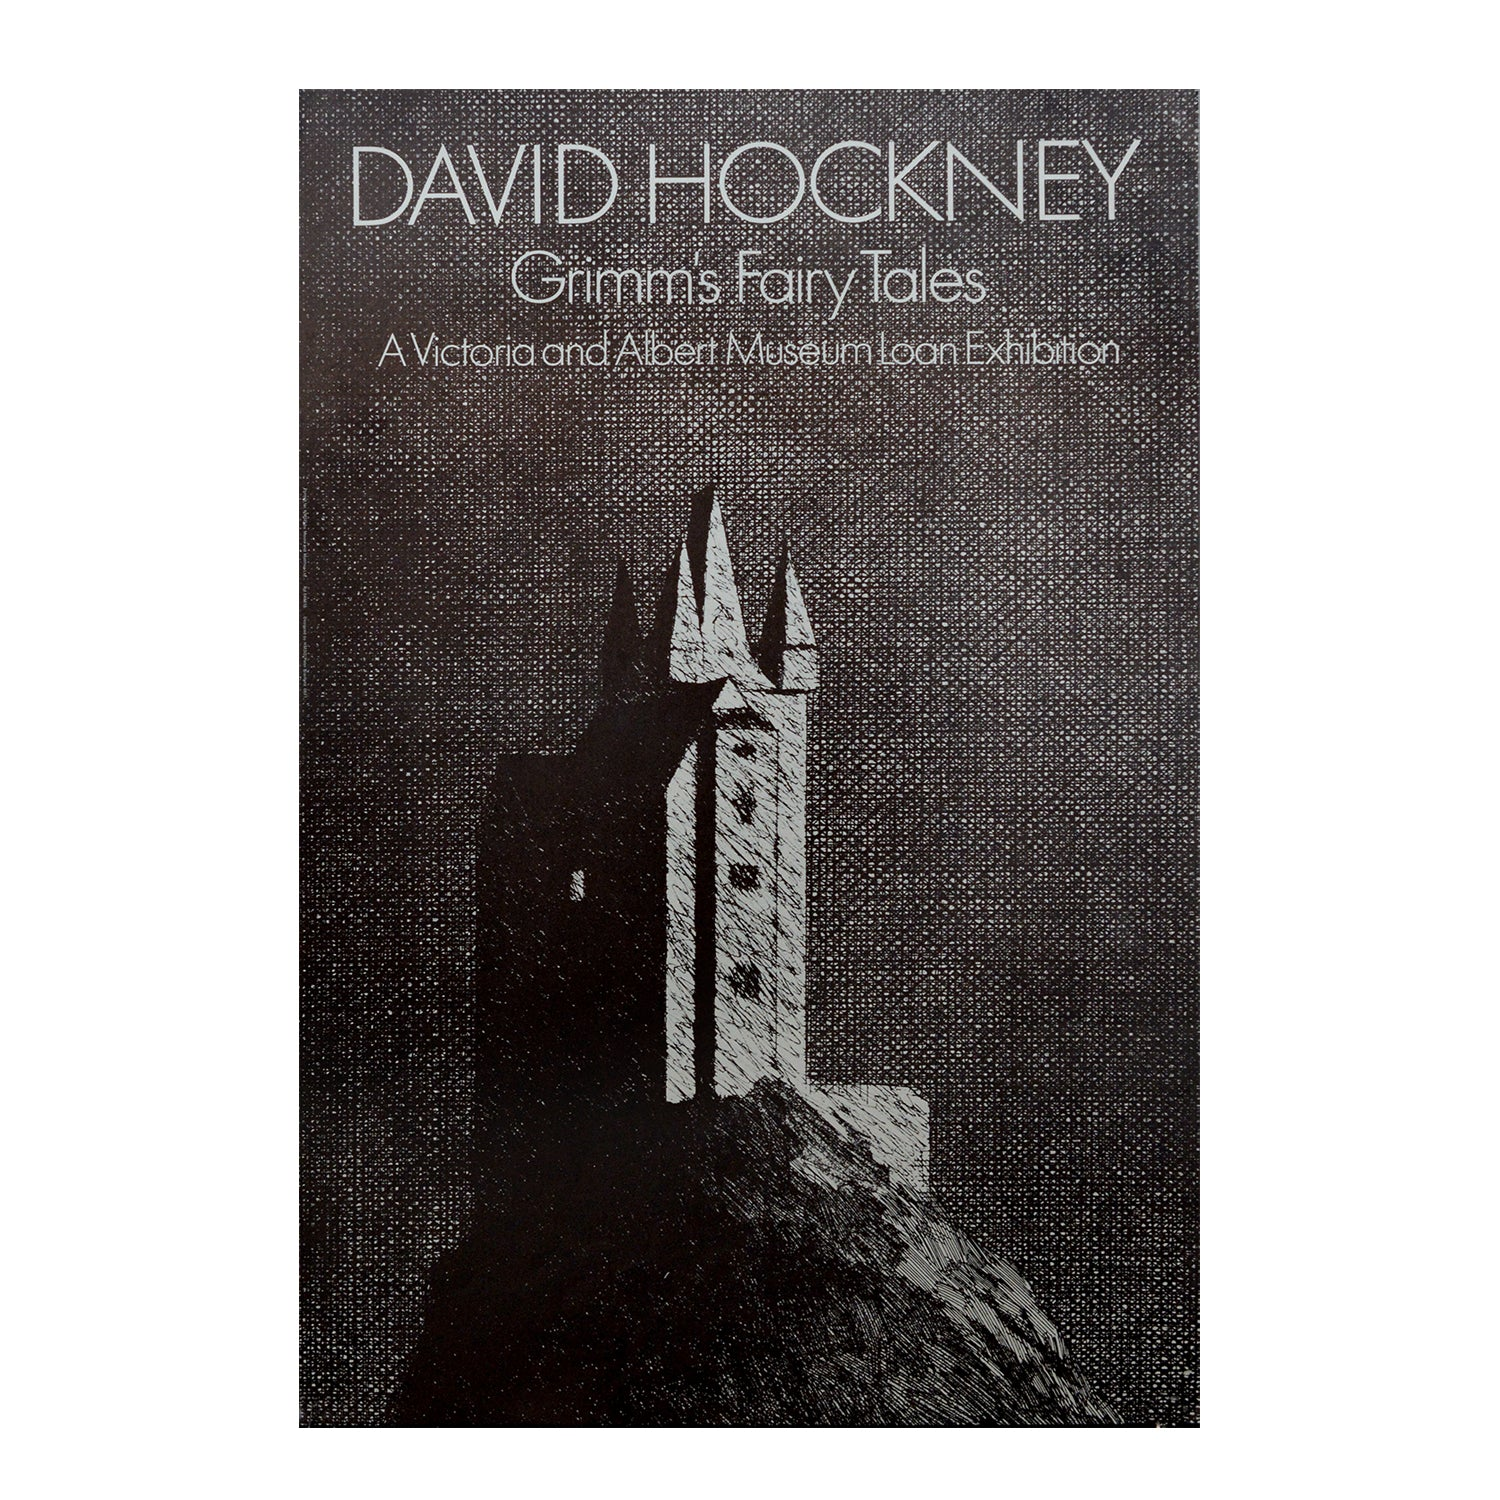 Original poster: David Hockney. Grimms Fairy Tales. V&A Touring Exhibition